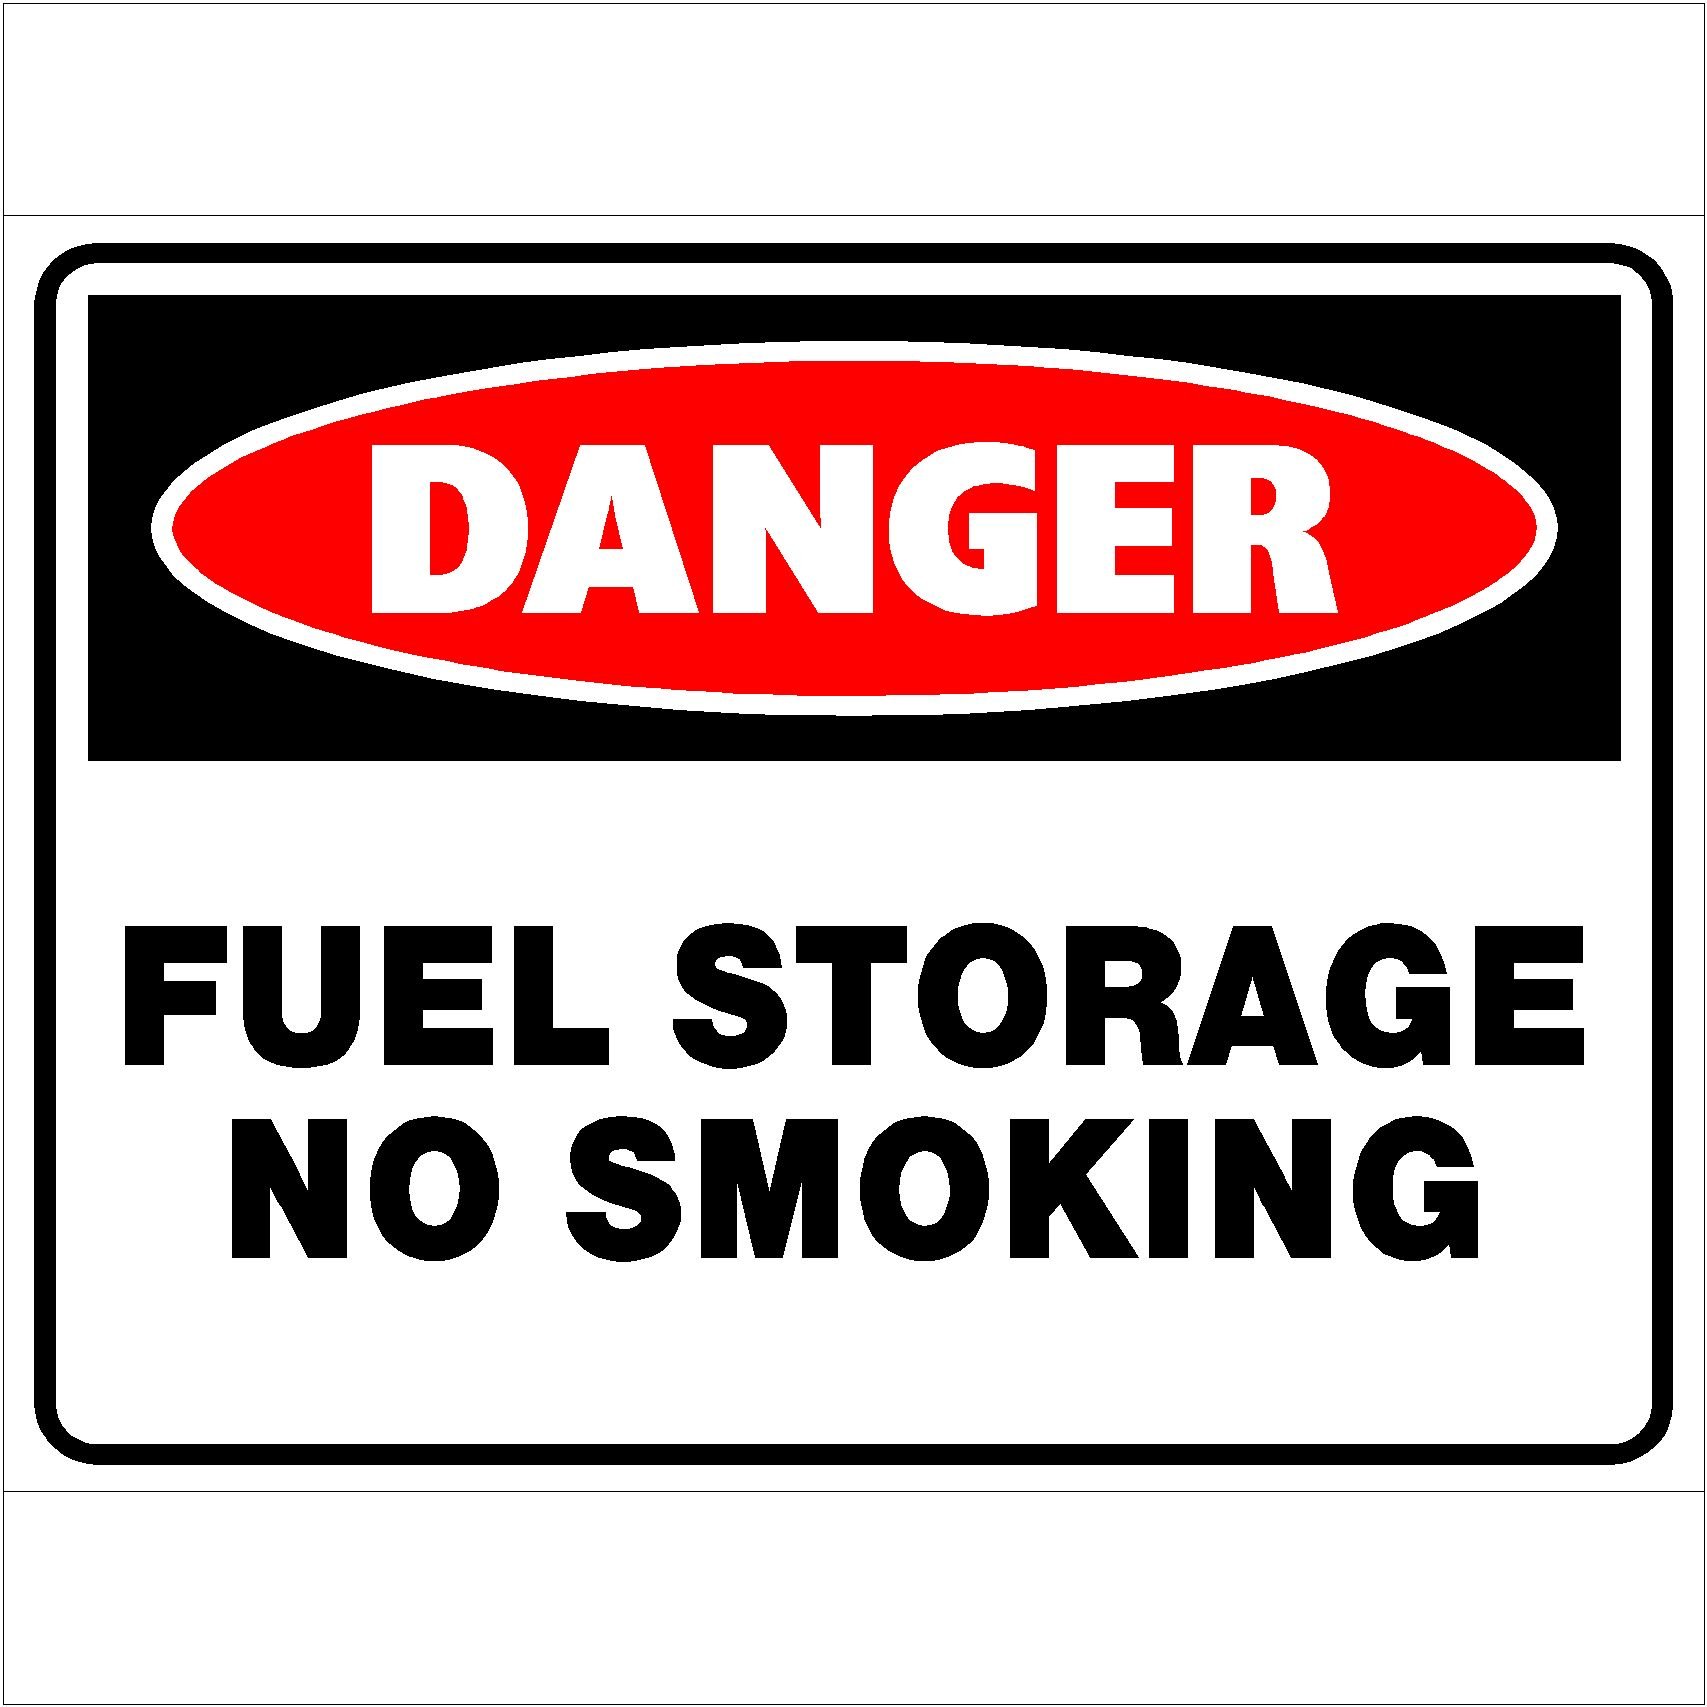 Danger Fuel Storage No Smoking